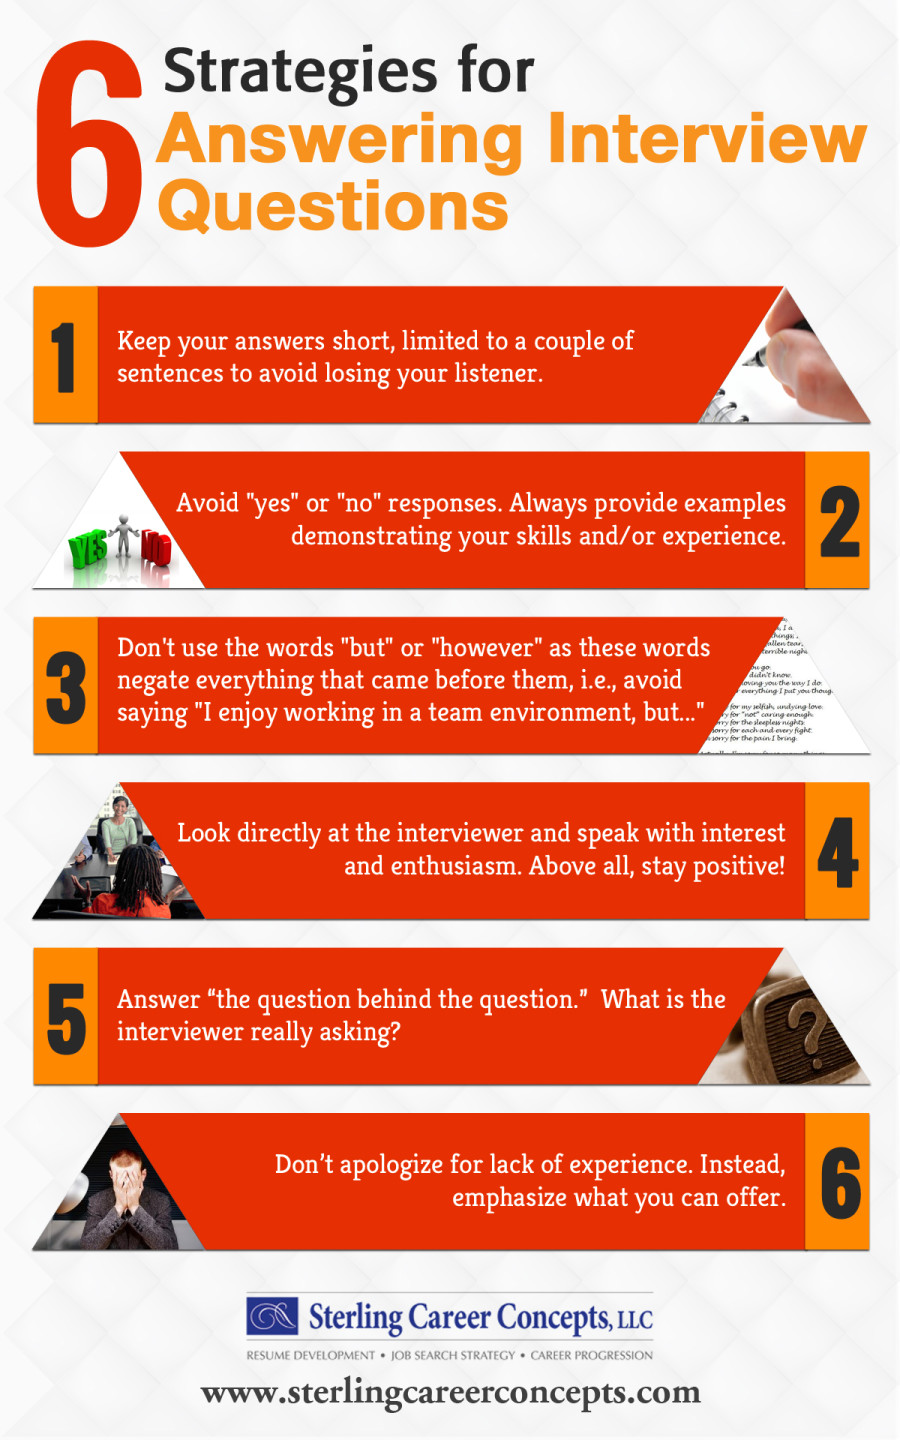 6 Strategies for Answering Interview Questions #infographic #Career #Interview #infographics #Interview Questions #Interview Mistakes